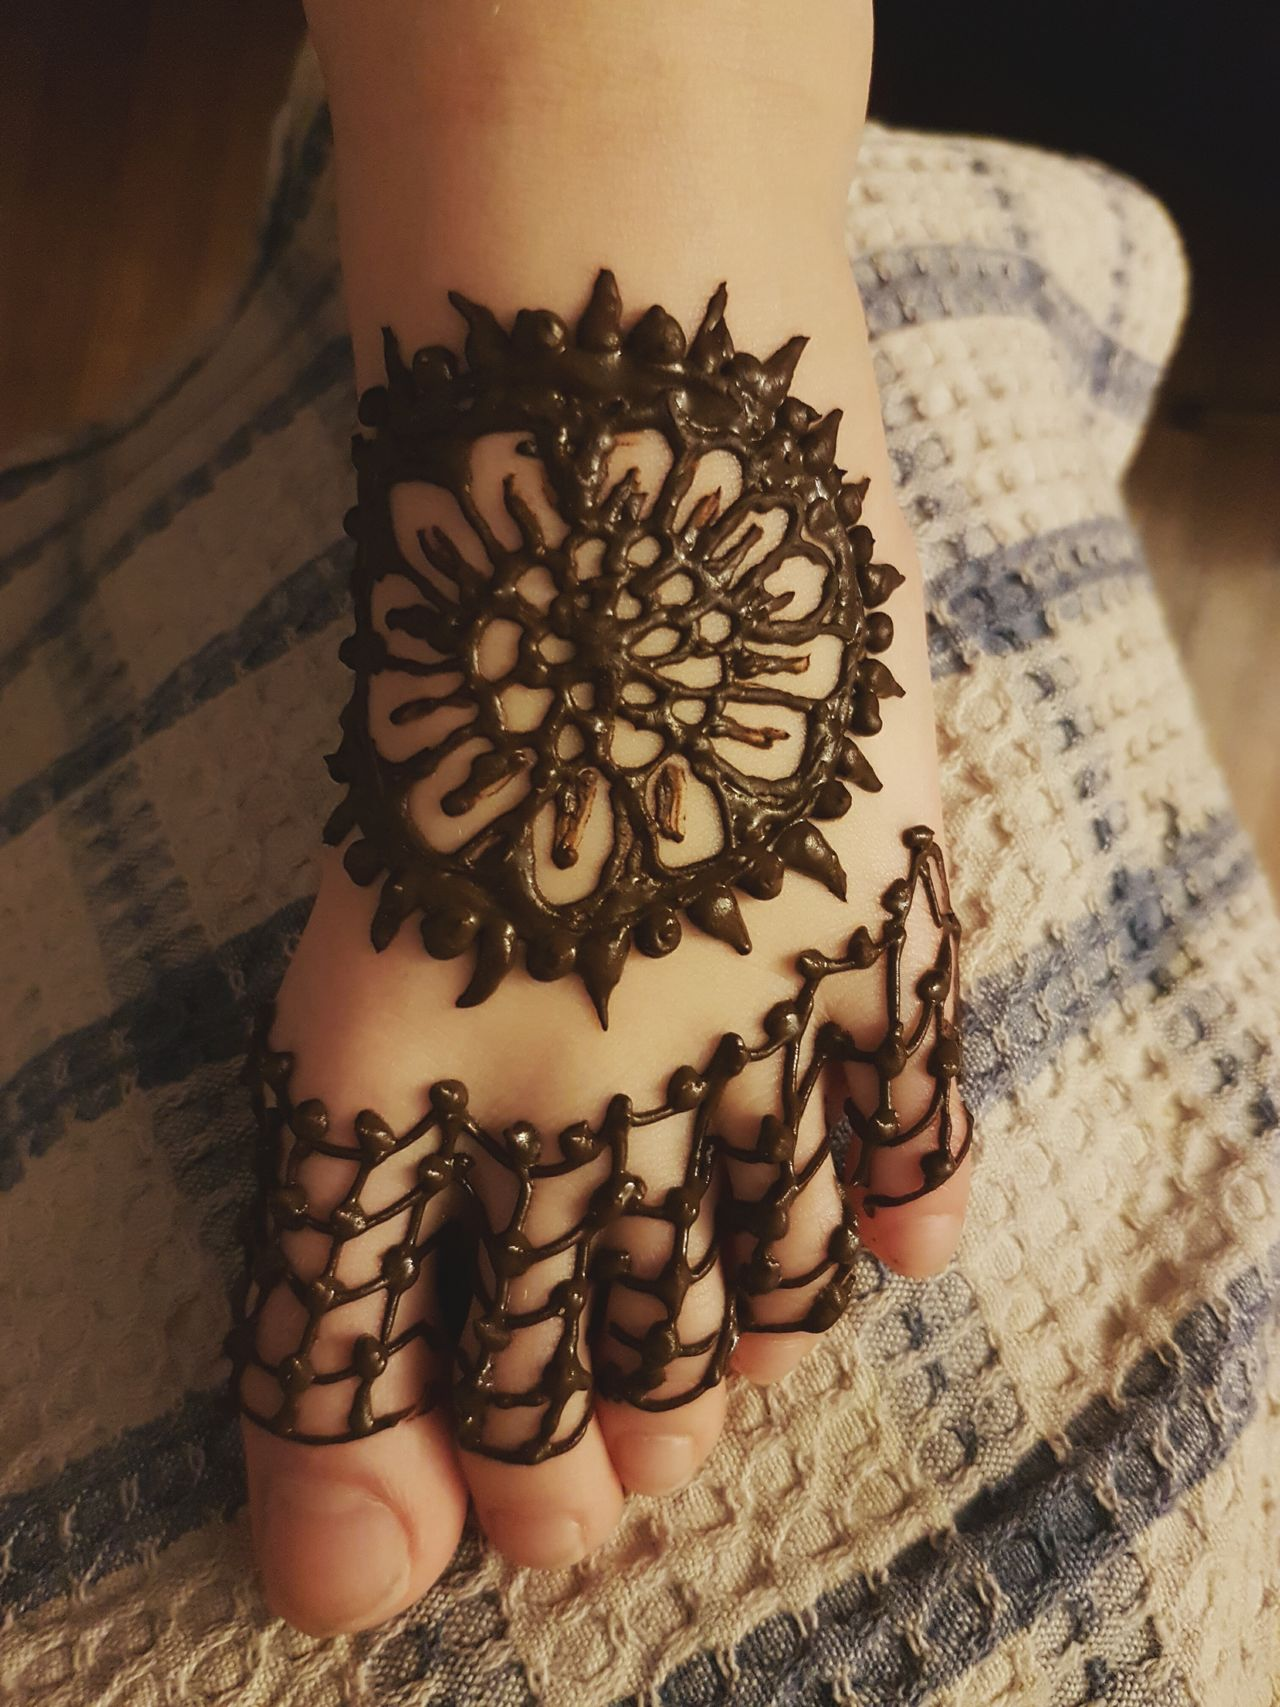 MehndiDesigns Mehndi Cultures MehndiDesign Punjabistyle MehndiTattoo Henna Tattoo MehndiArtist Culture Human Skin Human Body Part MehndiTattoos Feet